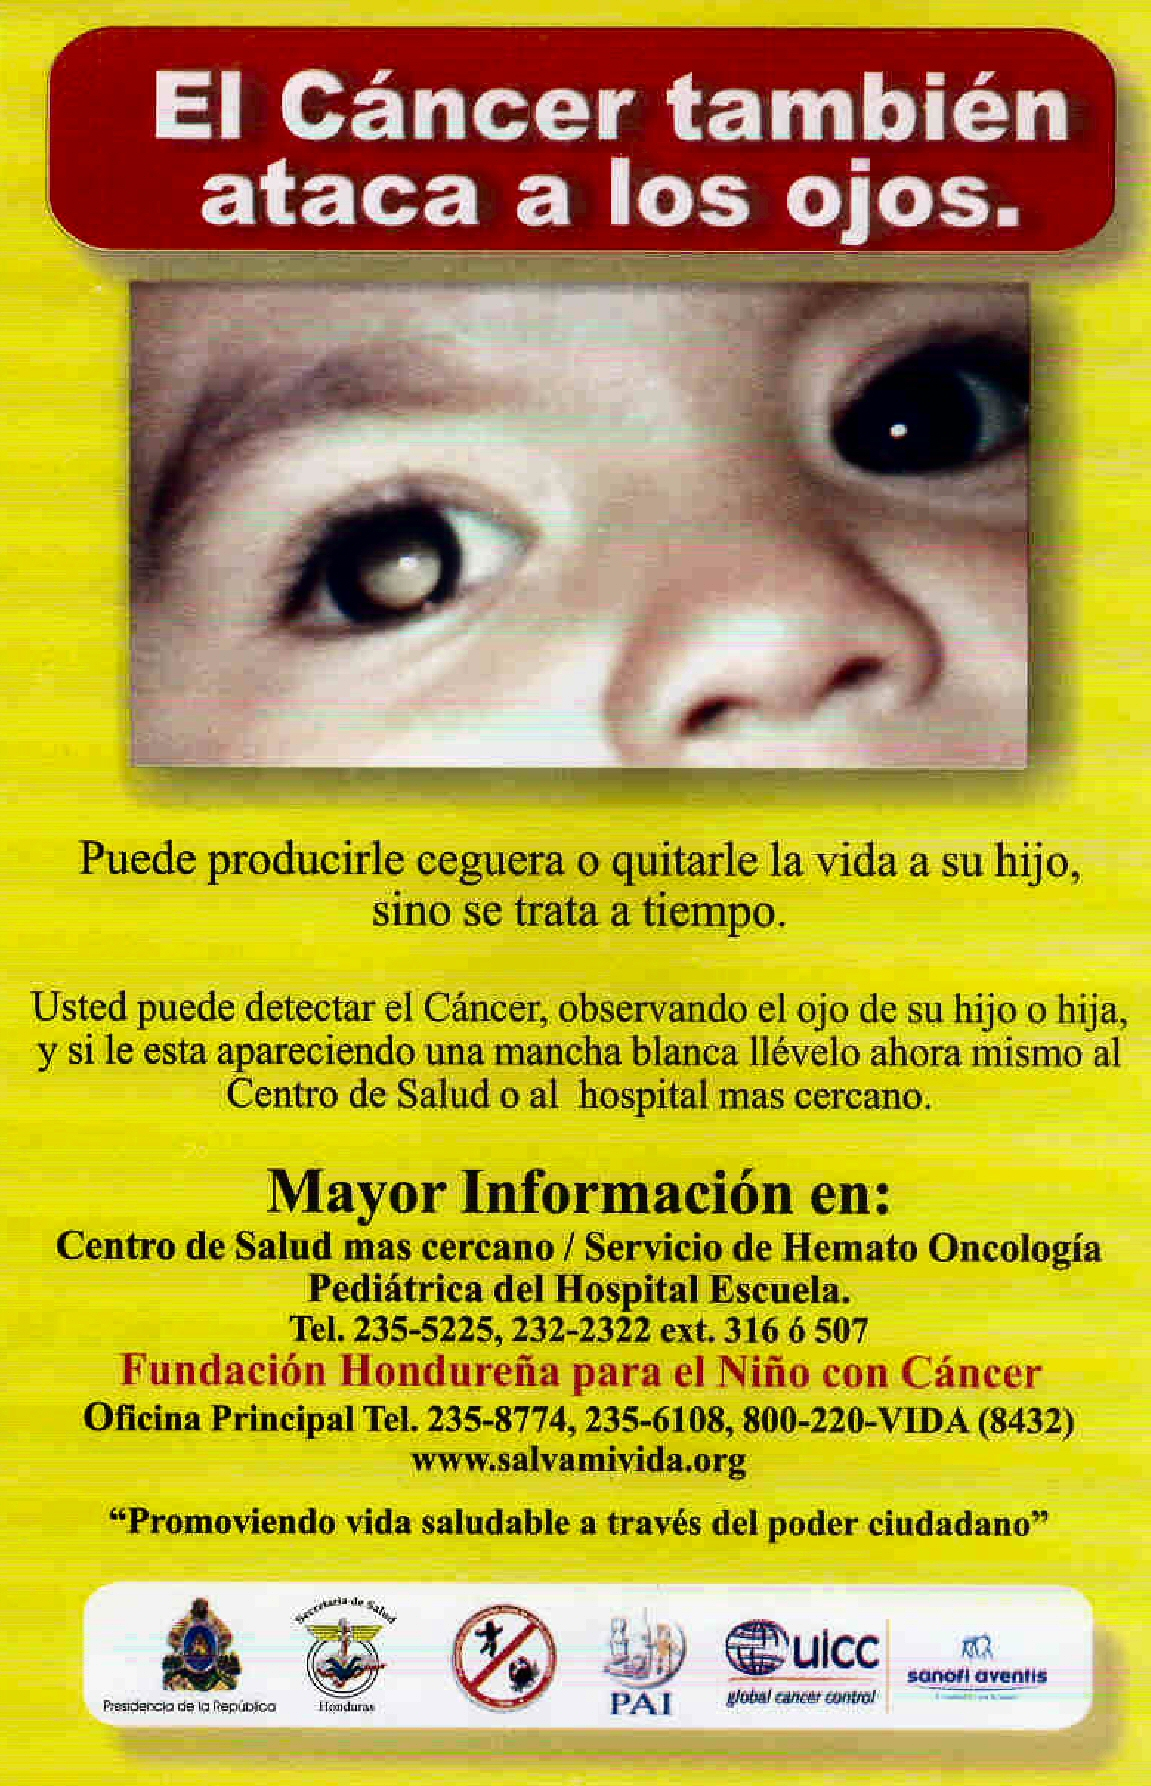 A retinoblastoma awareness poster used during the Honduras campaign. The poster is bright yellow, with white title text highlighted on a bold red banner background. Detailed text in Spanish sits below a headline photo showing a rectangular section around a child's eyes, highlighting the white glow in one eye.